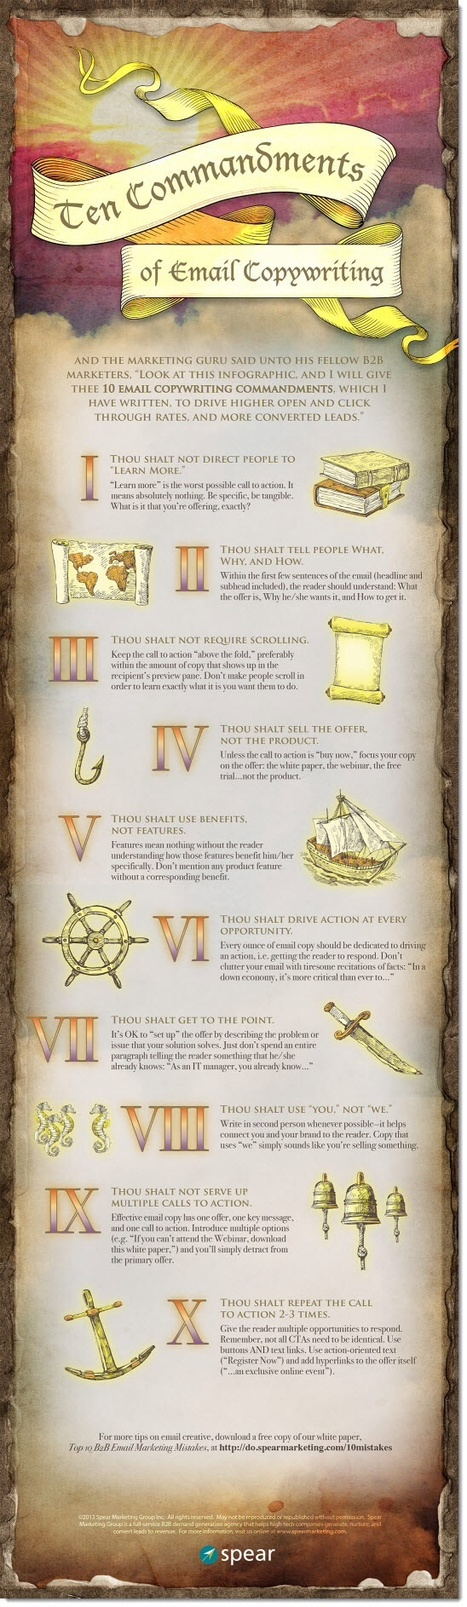 10 Commandments of Email Copywriting [INFOGRAPHIC] | MarketingHits | Scoop.it